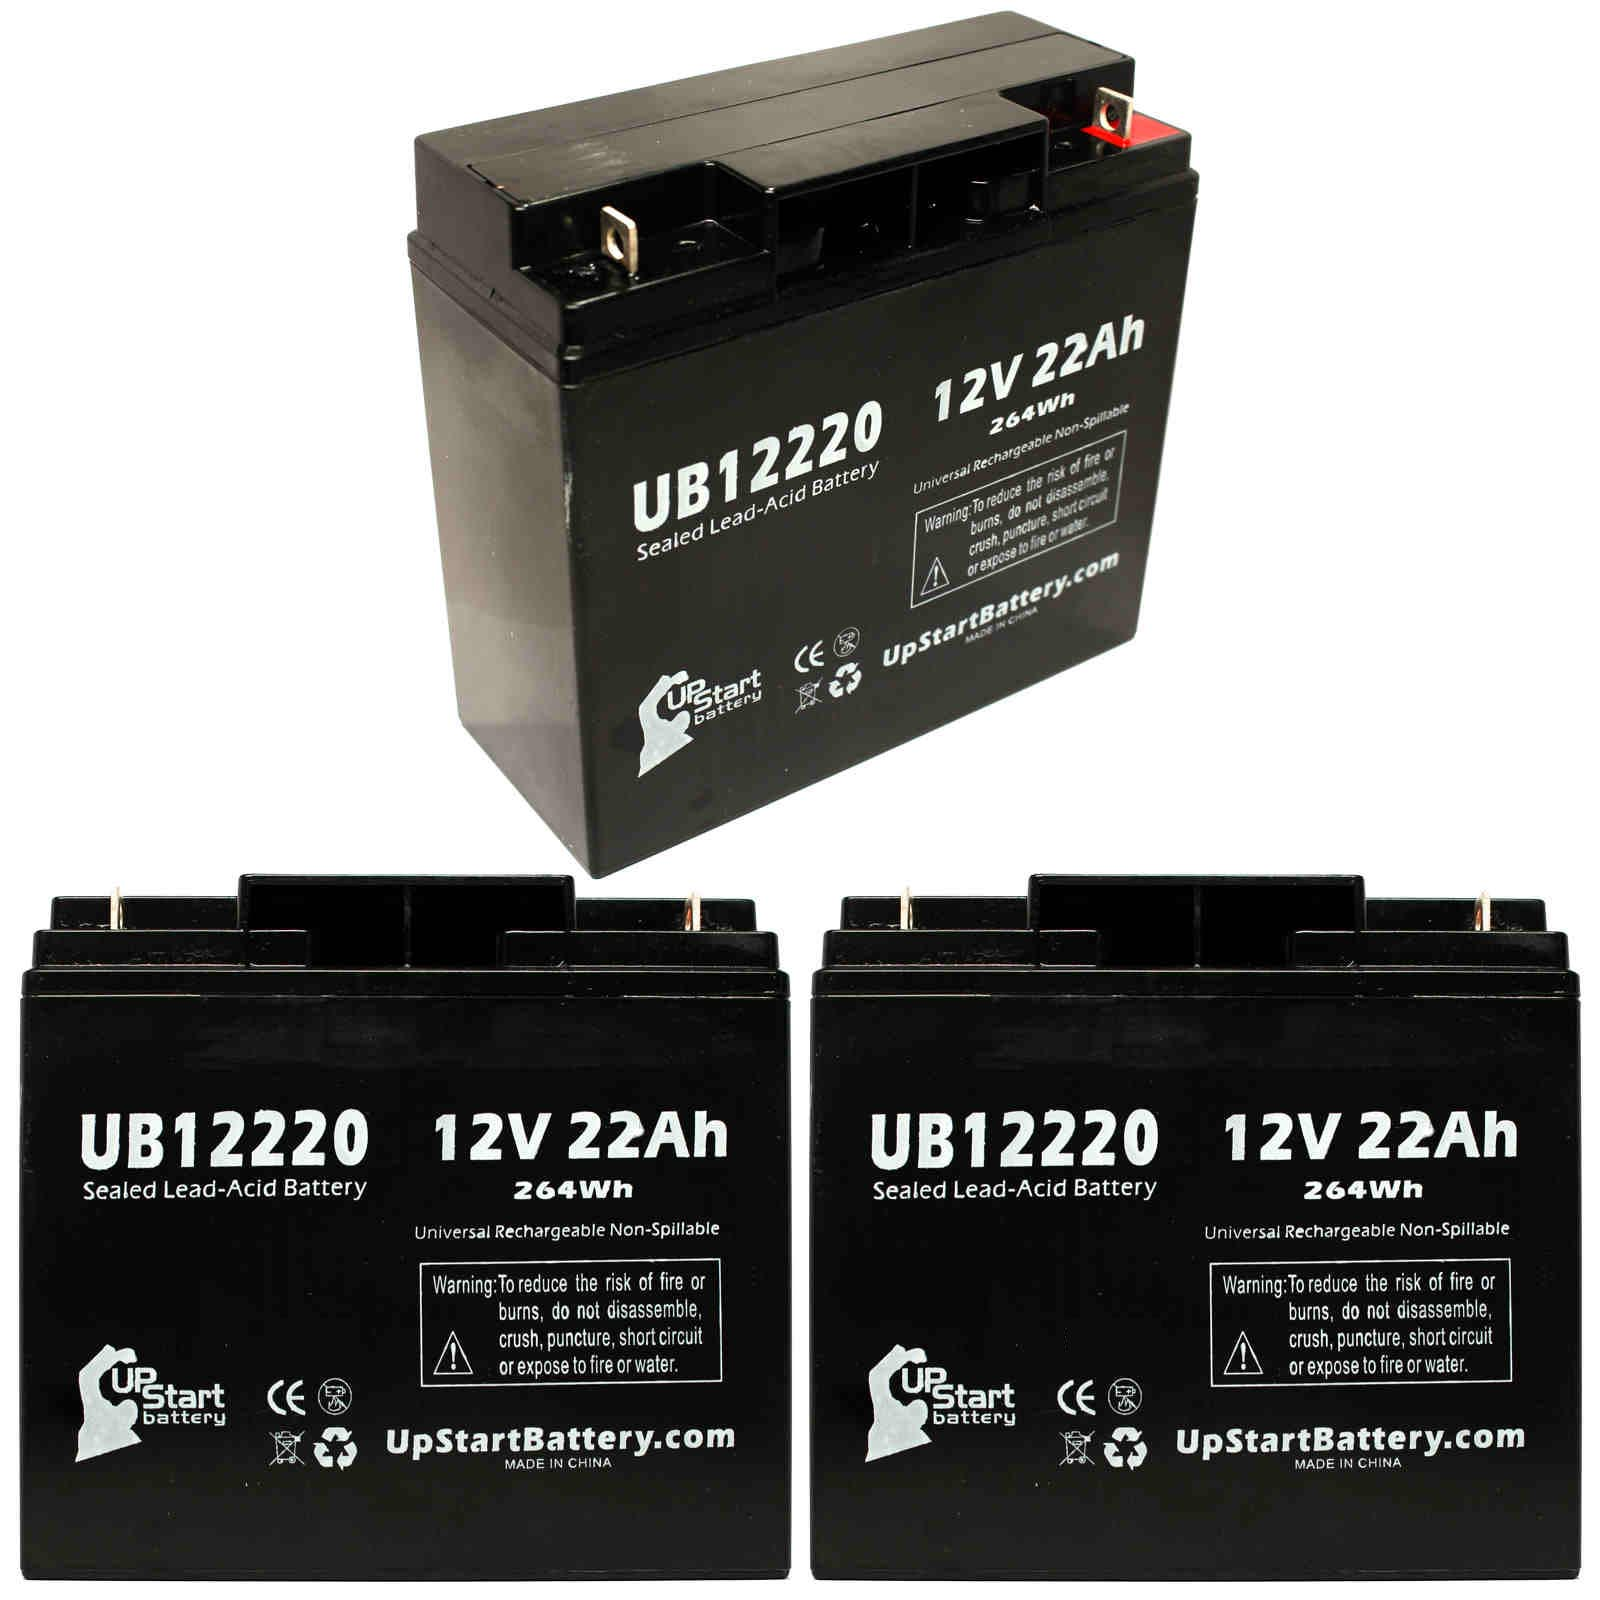 UpStart Battery 3x Pack - Access Battery BED Battery - Replacement UB12220 Universal Sealed Lead Acid Battery (12V, 22Ah, T4 Terminal,) at Sears.com